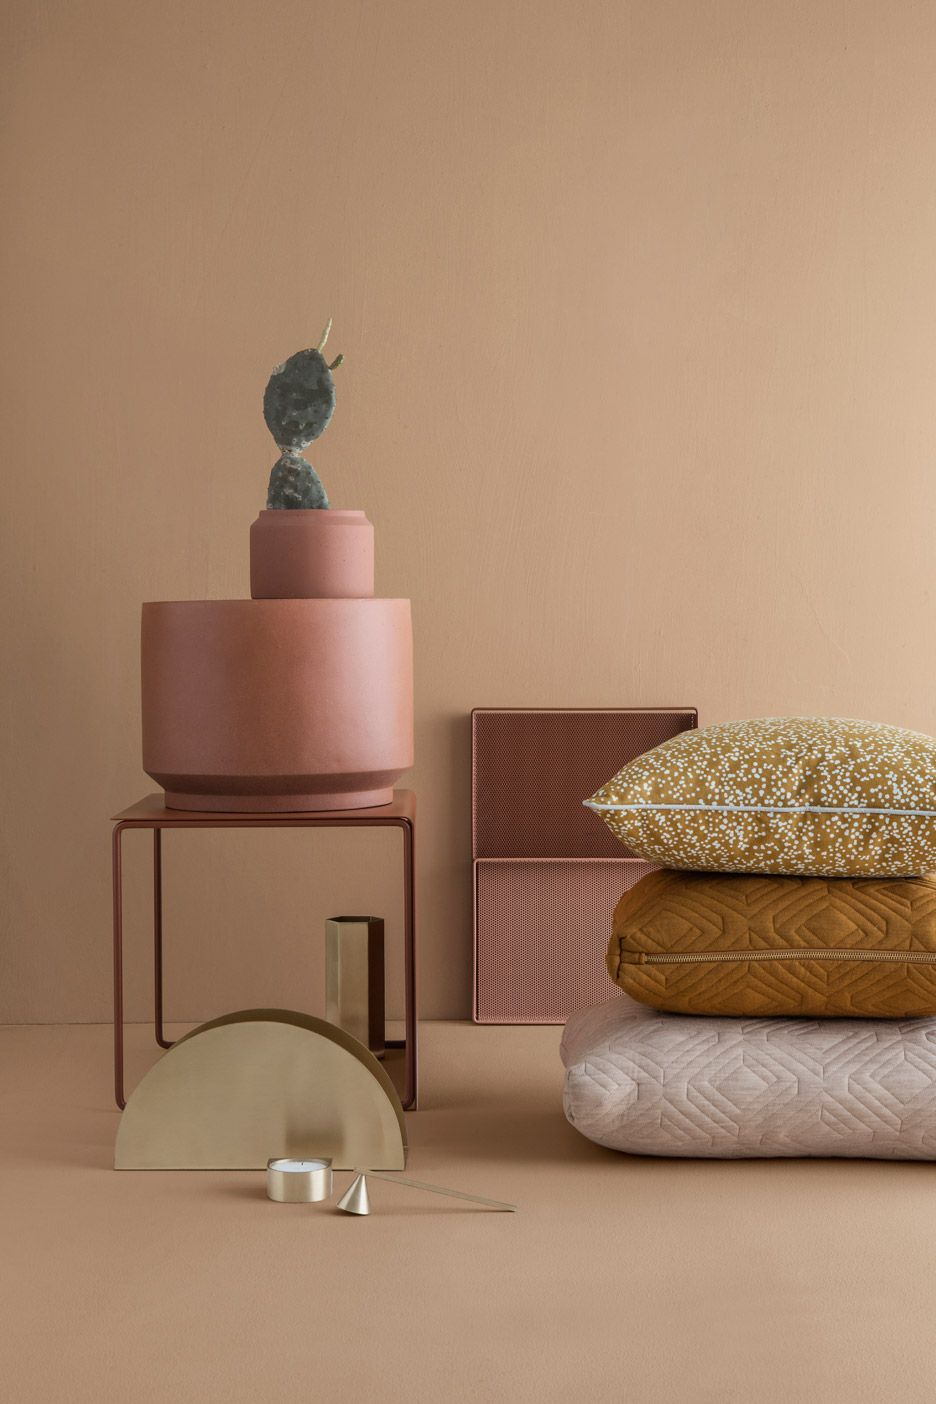 ferm living's furniture collection includes perforated shelves  - ferm living spring summer  collection